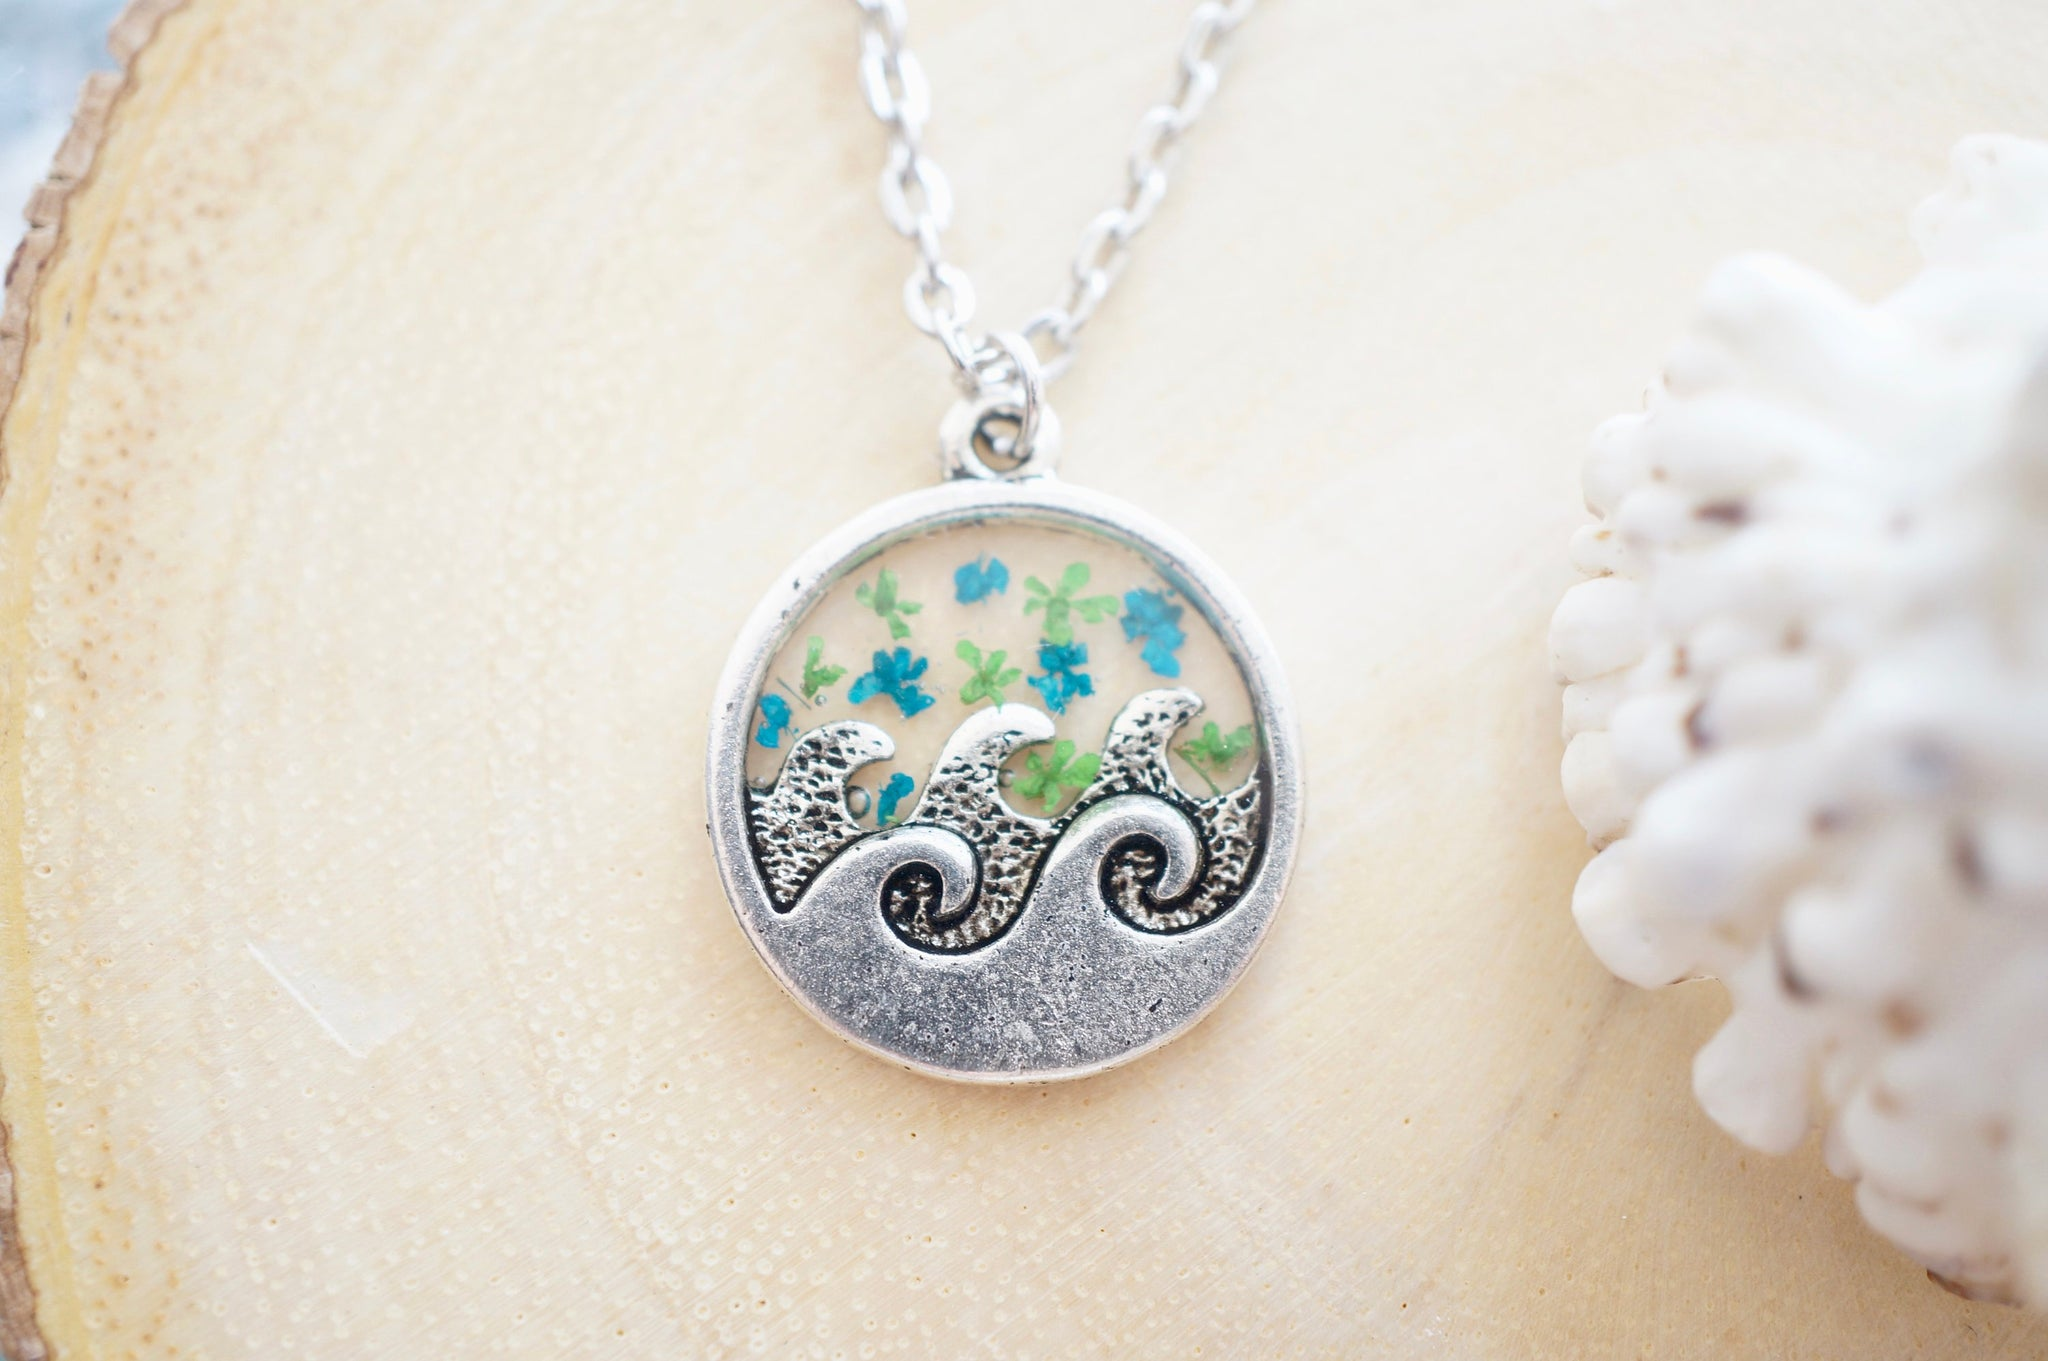 Real Pressed Flowers in Resin, Silver Circle Wave Necklace in Teal and Green